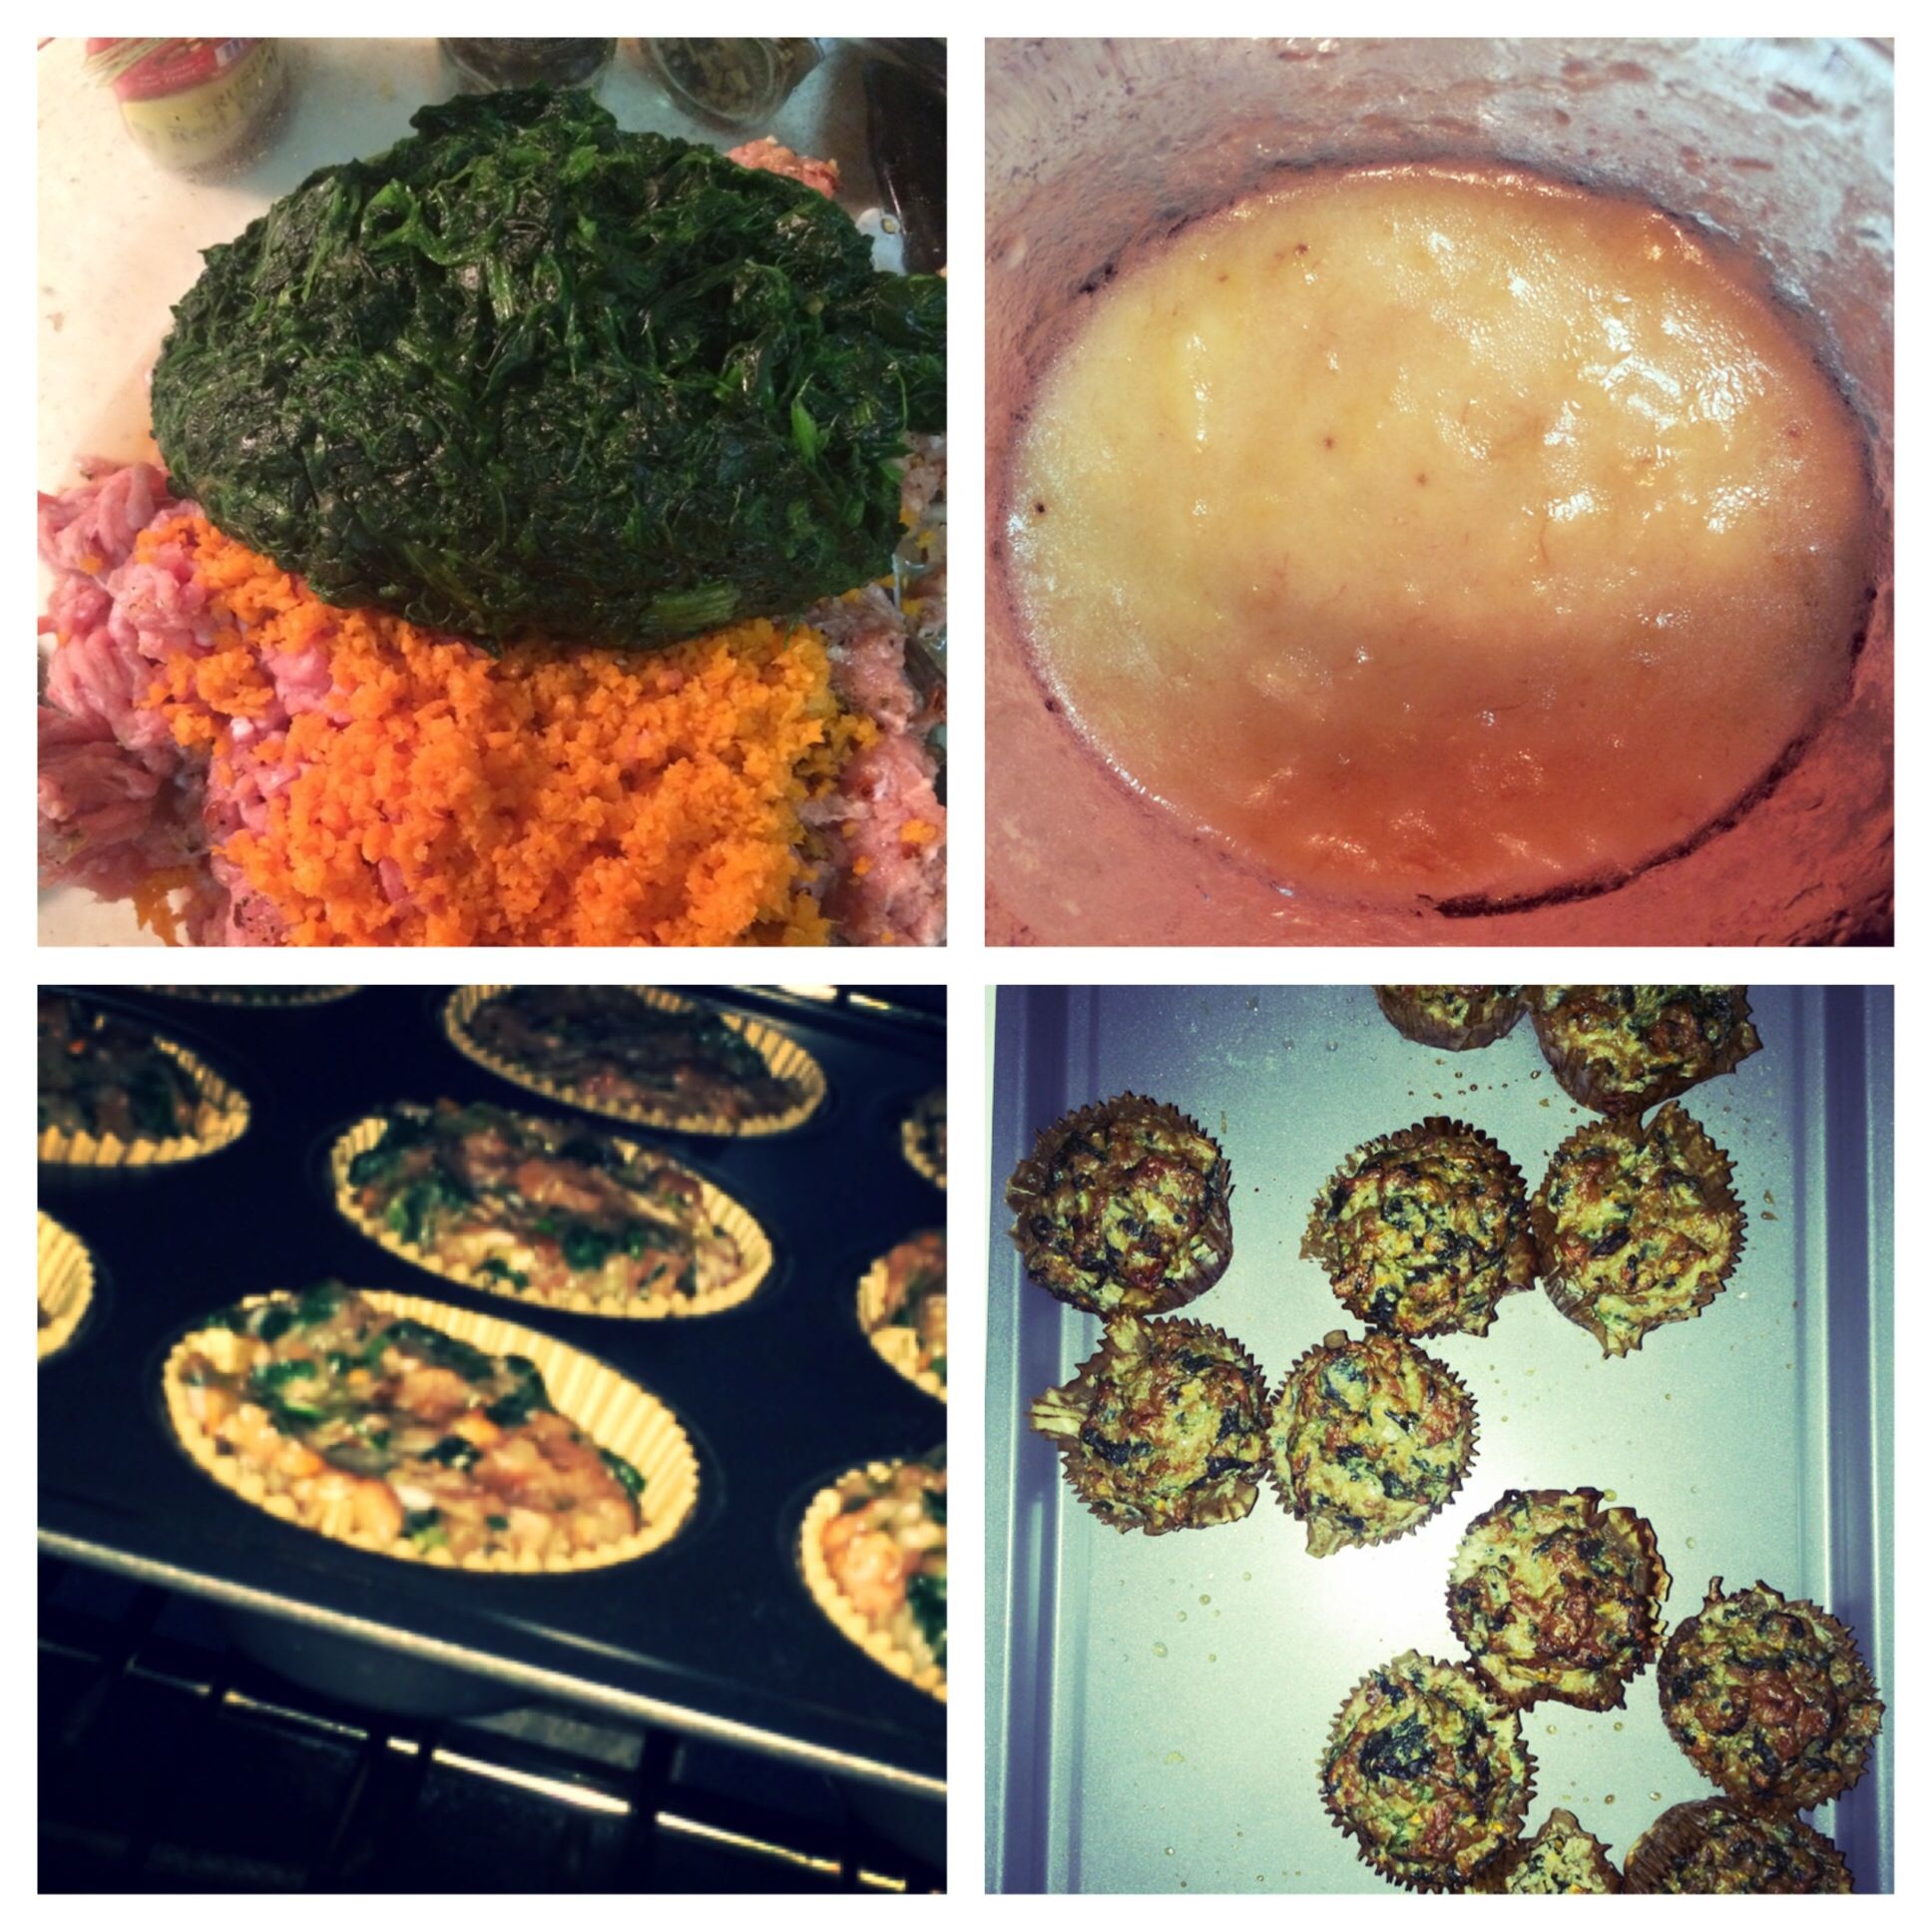 turkey meatloaf muffins #mixedverde #whole30 #paleo ... Exploring whole30 rand paleo recipes  yum&fun cooking